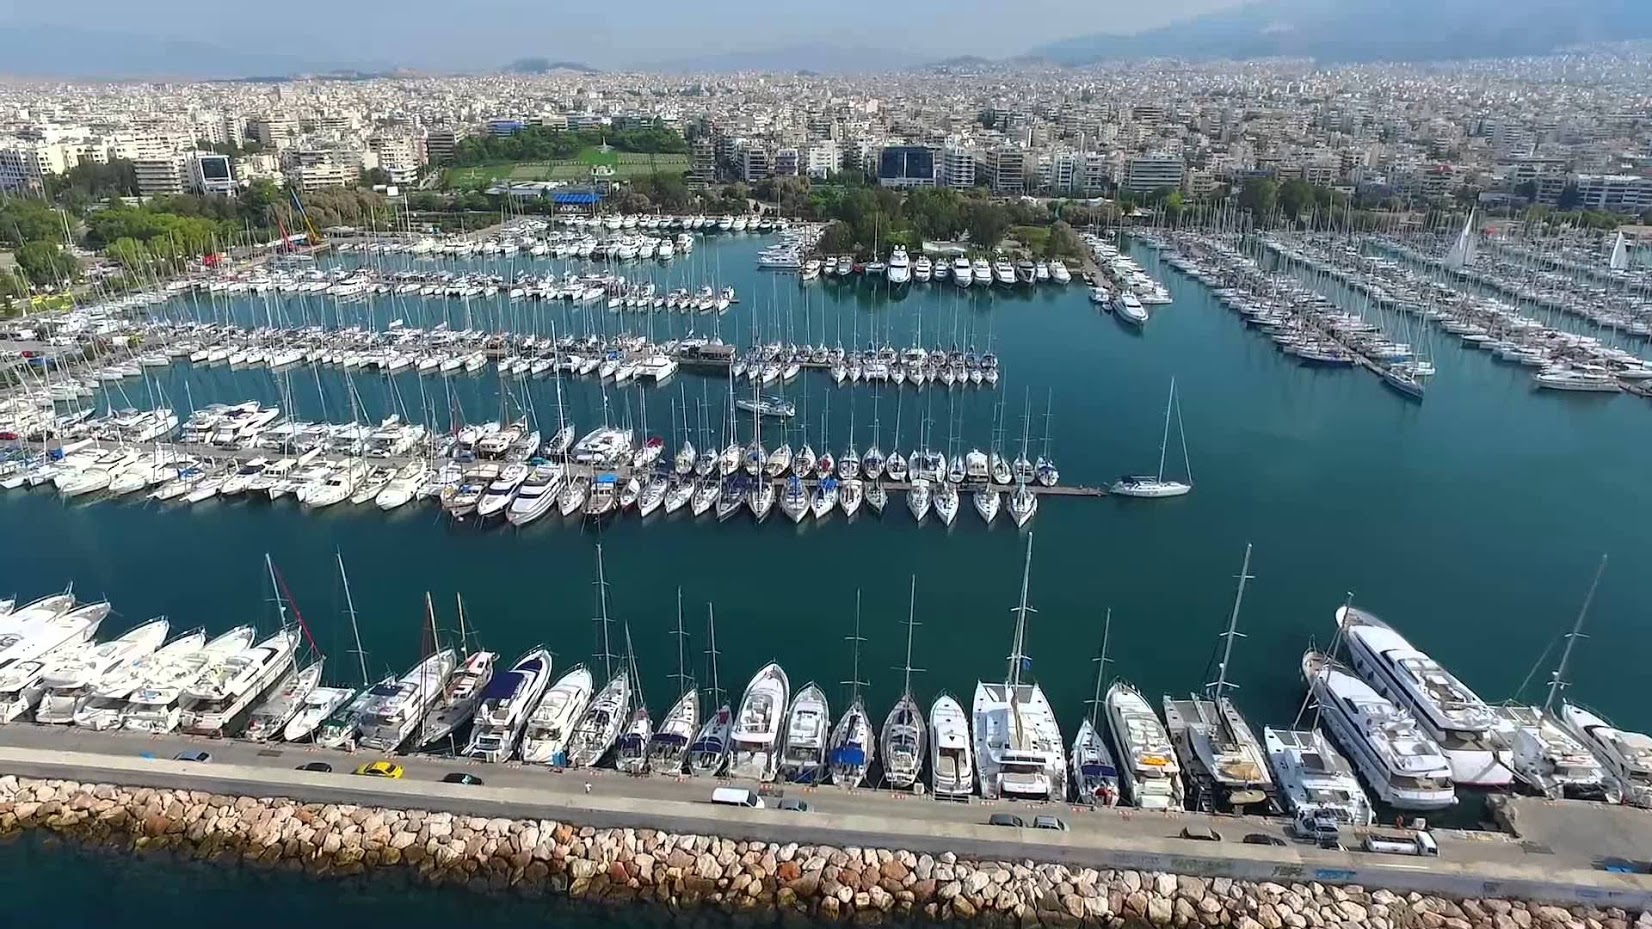 Rent a boat in Athens Greece